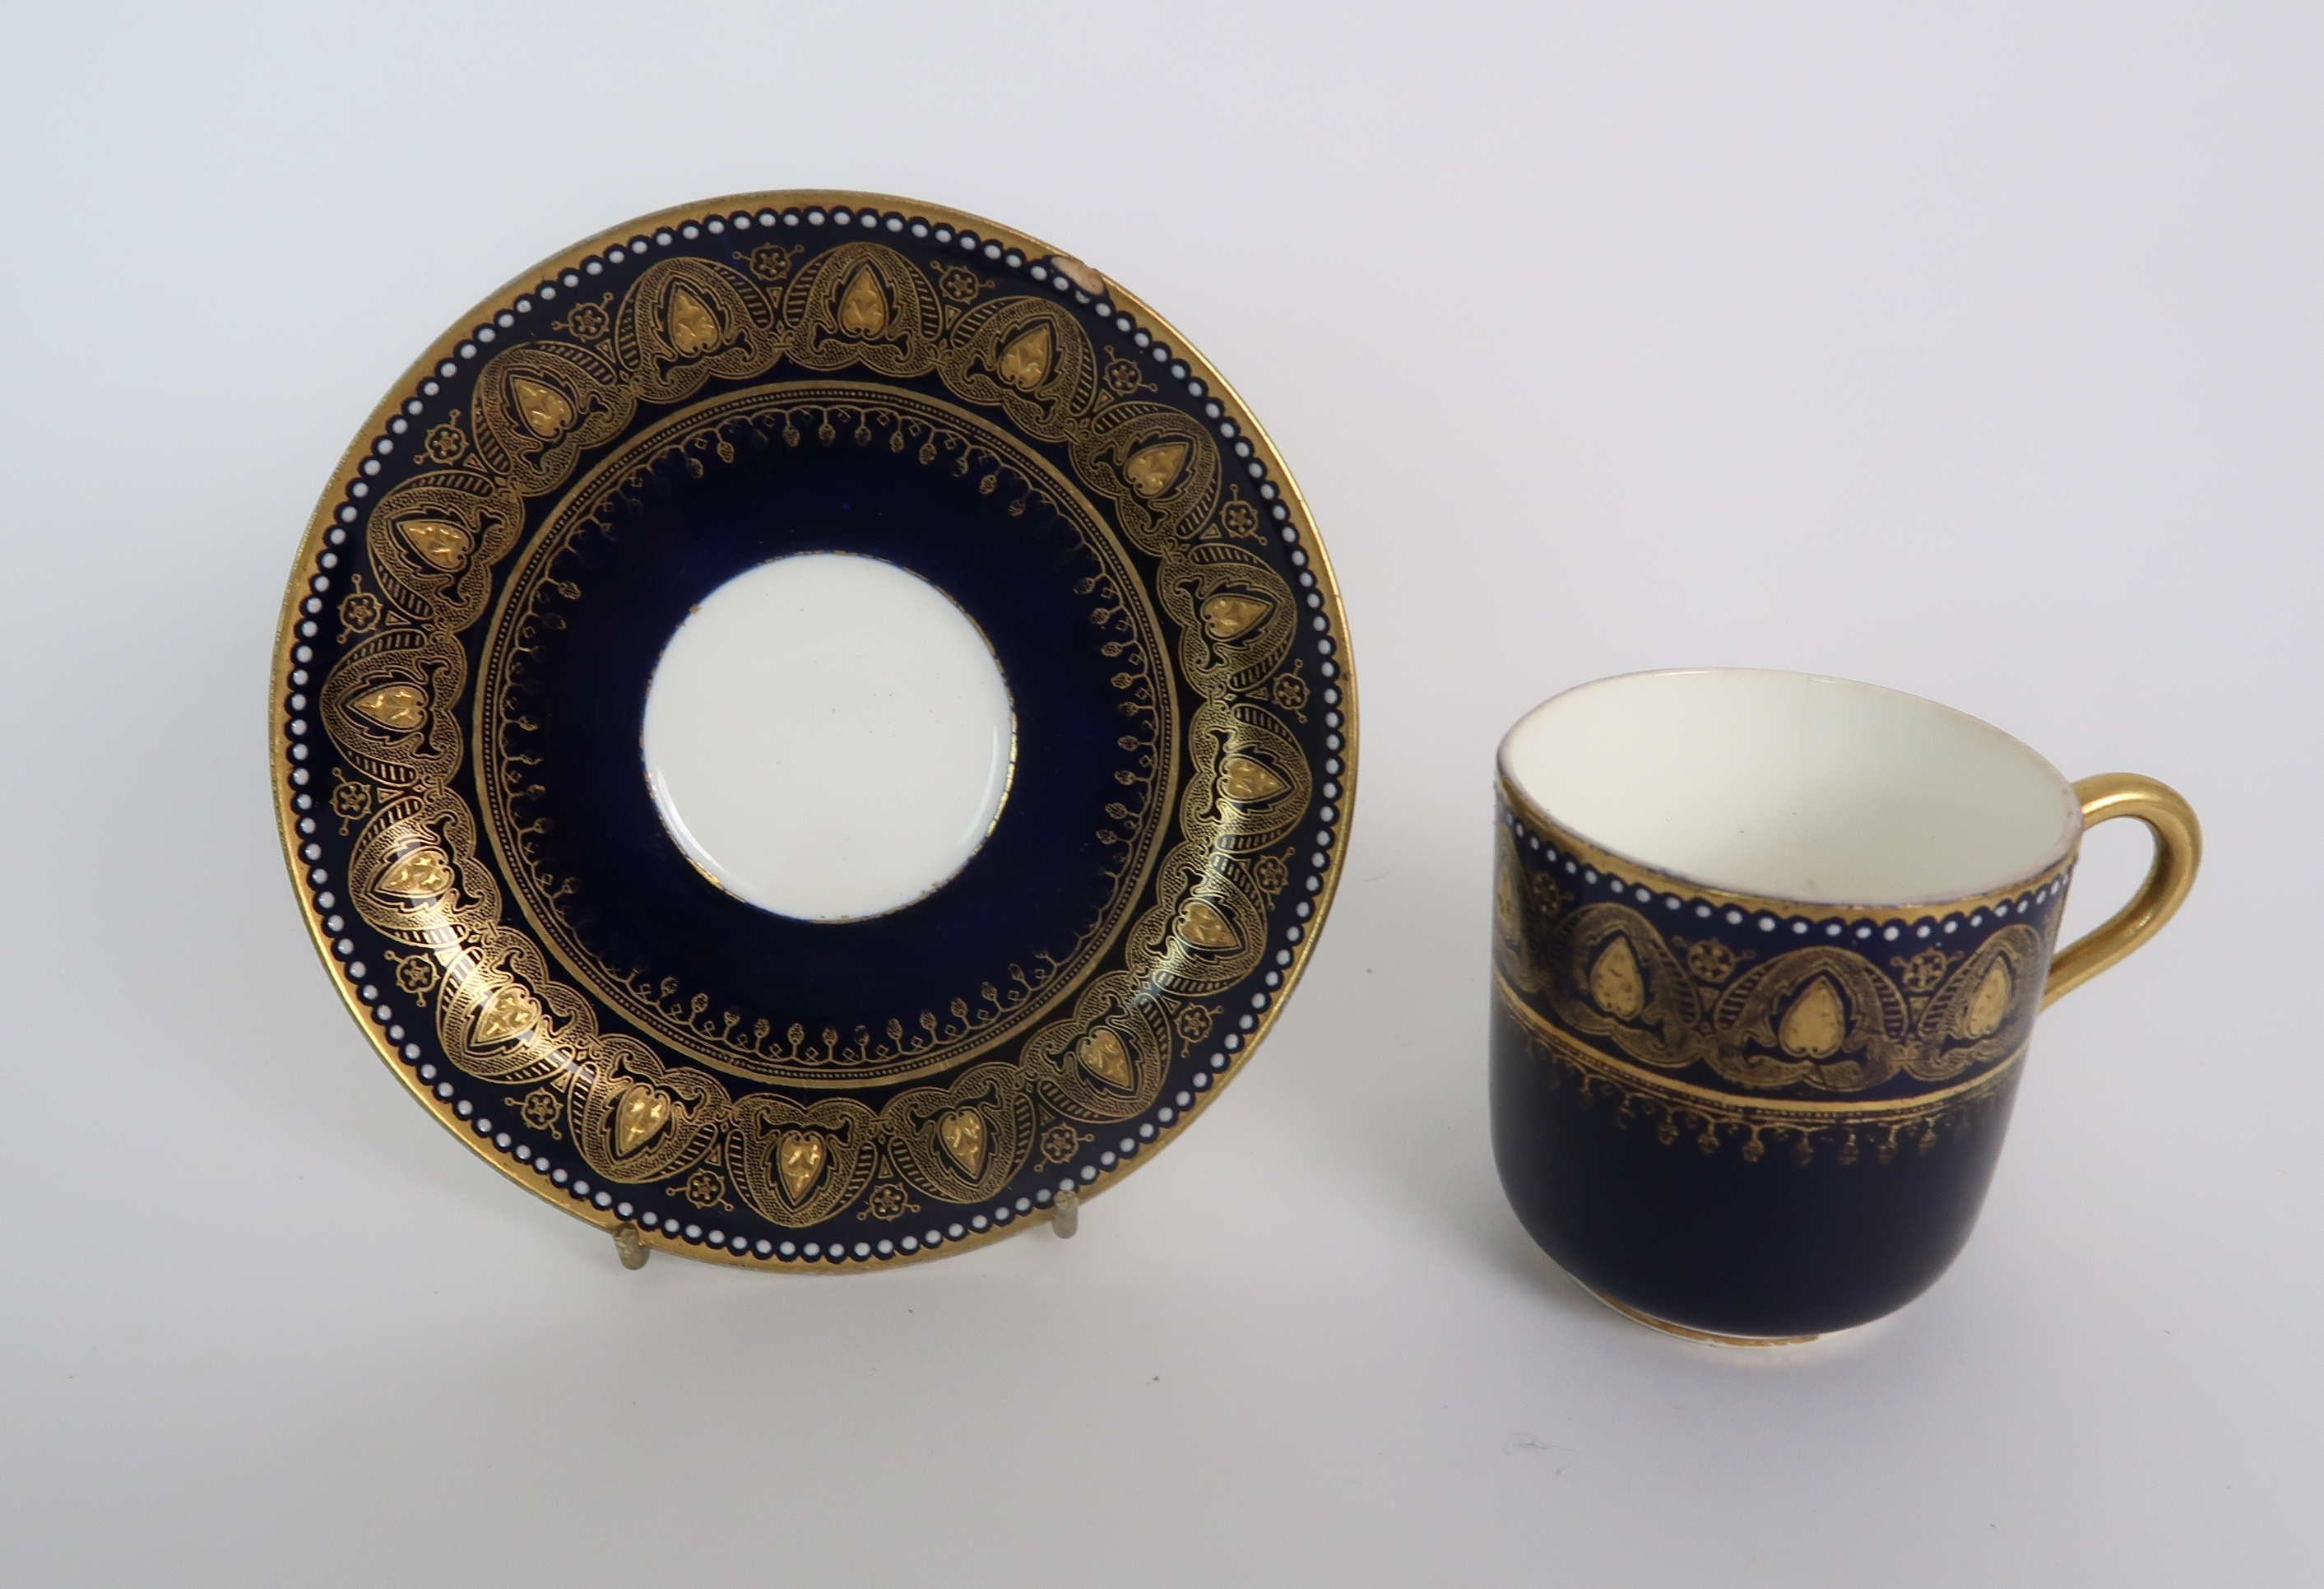 A COLLECTION OF 19TH CENTURY ENGLISH BLUE AND GILT DECORATED TEA AND COFFEE WARES including a - Image 14 of 23